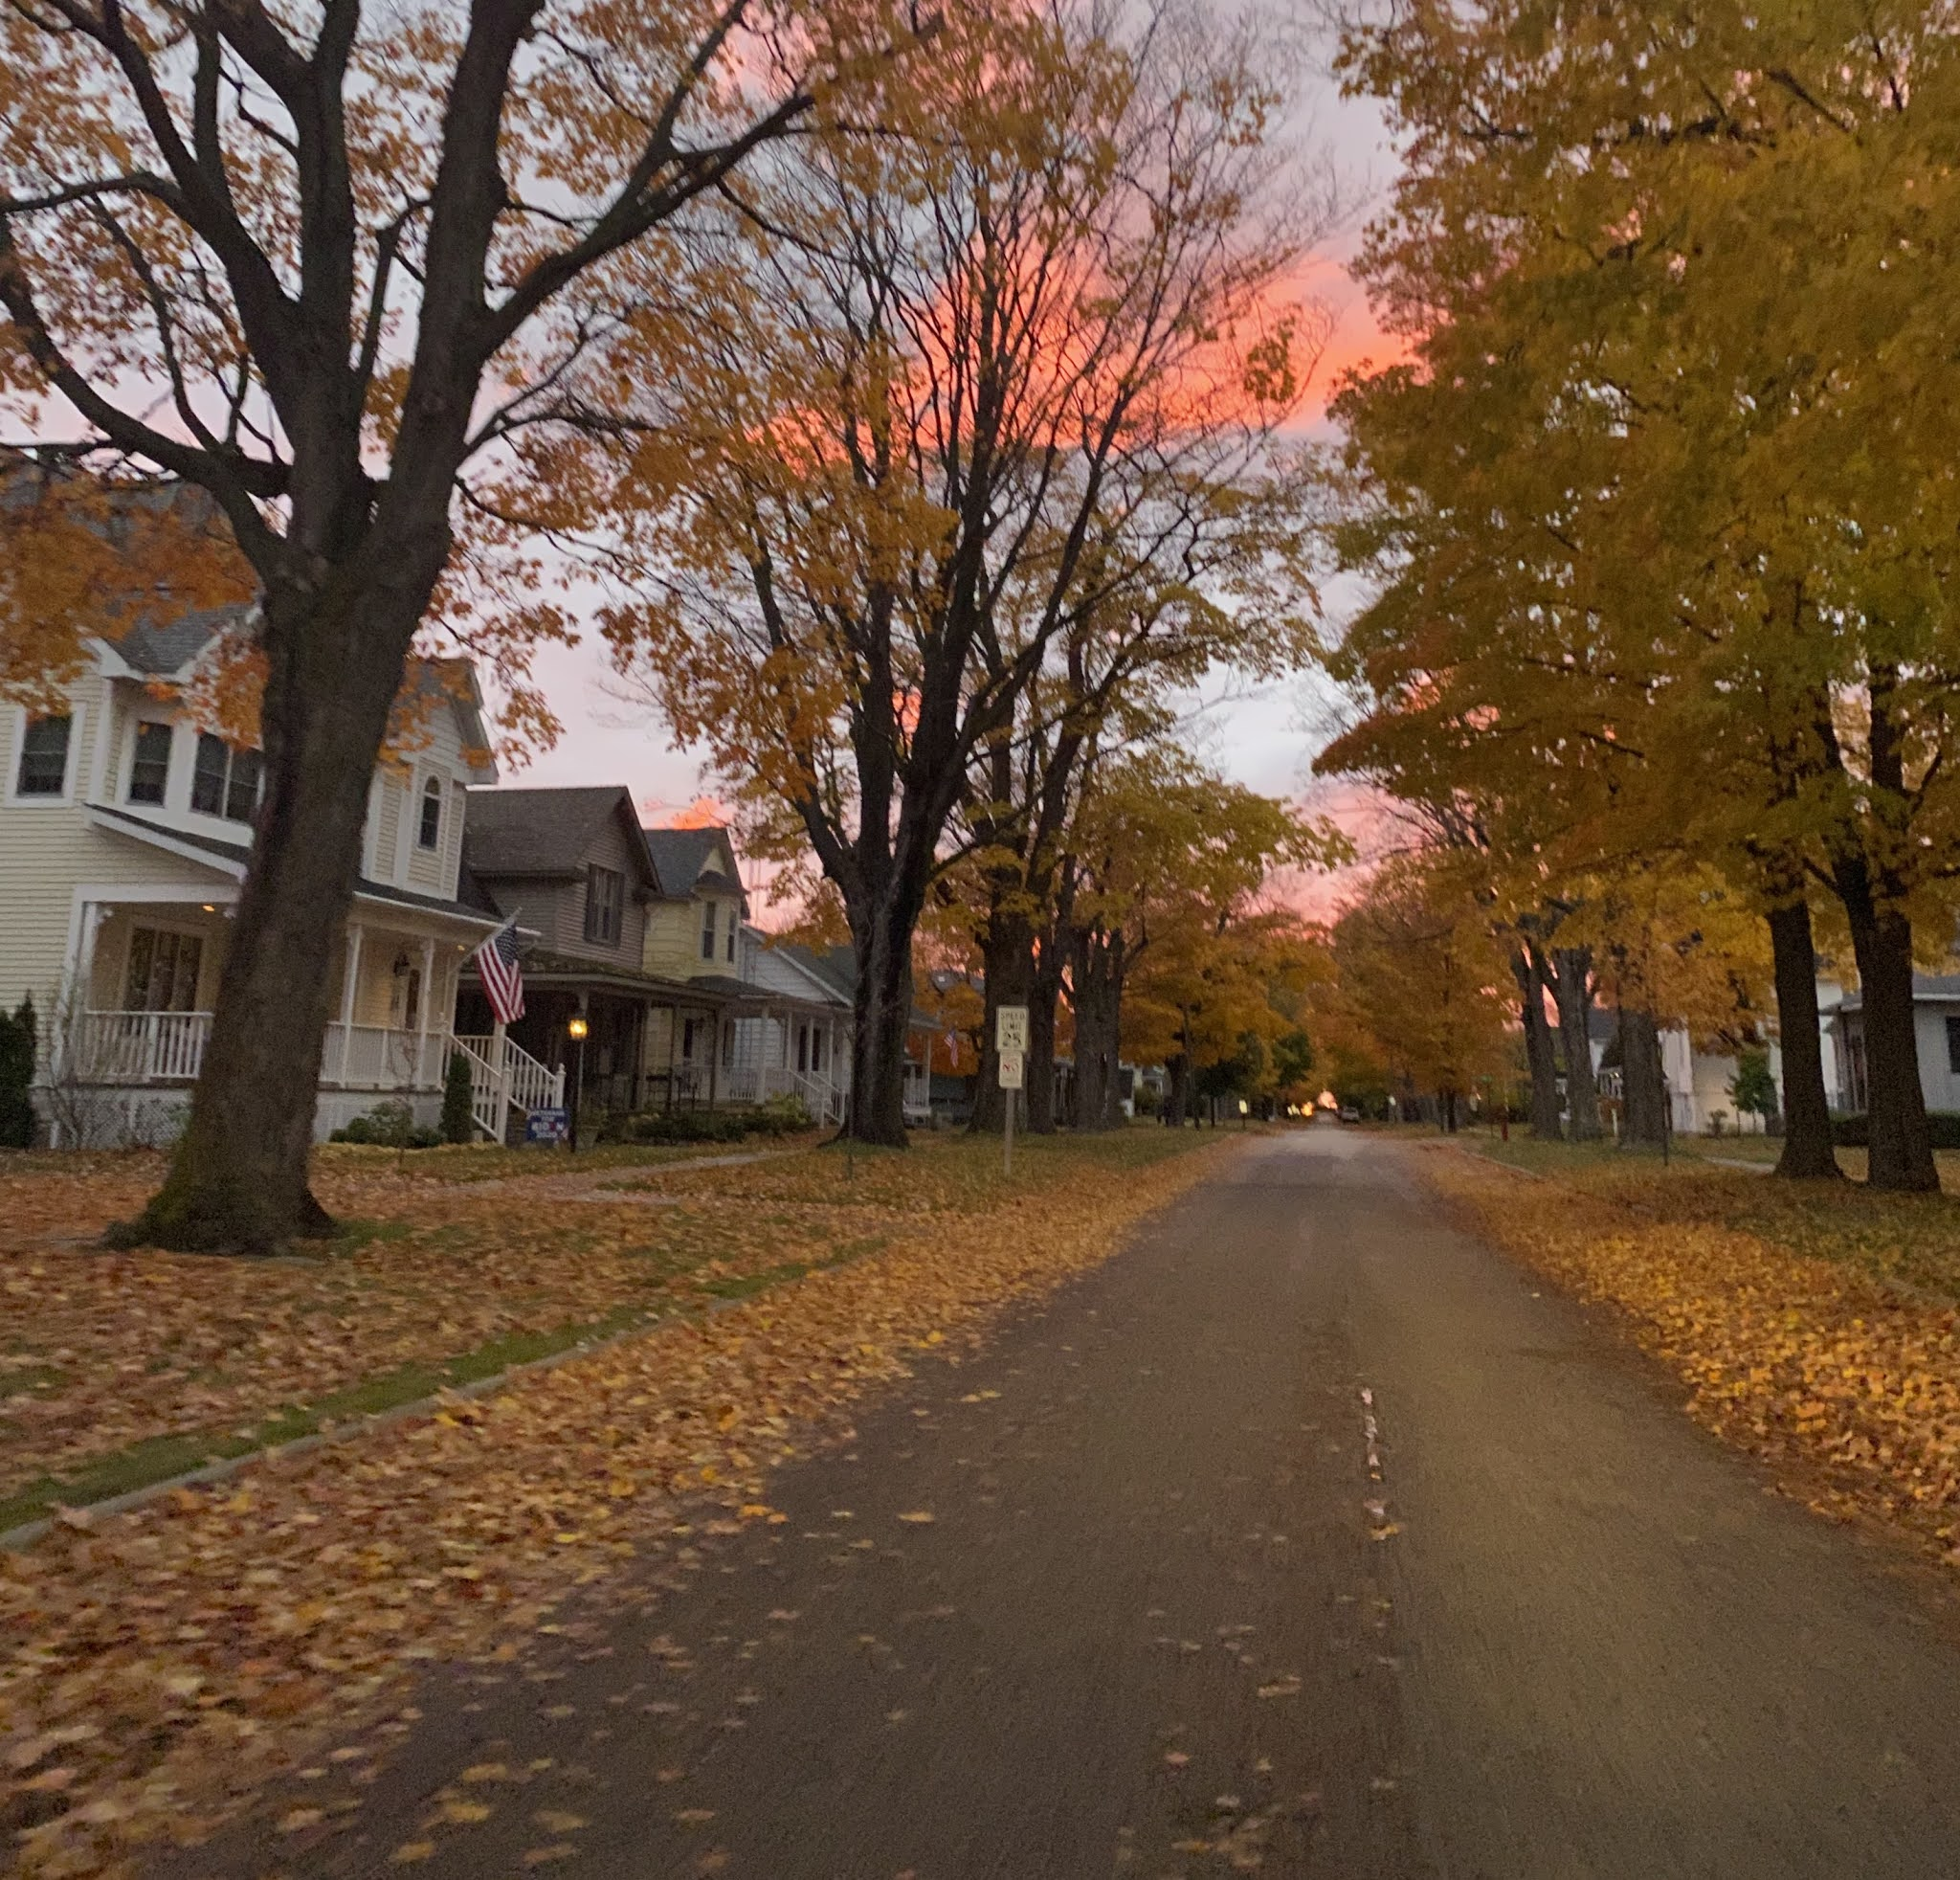 Frankfort Michigan in the Fall | biblio-style.com